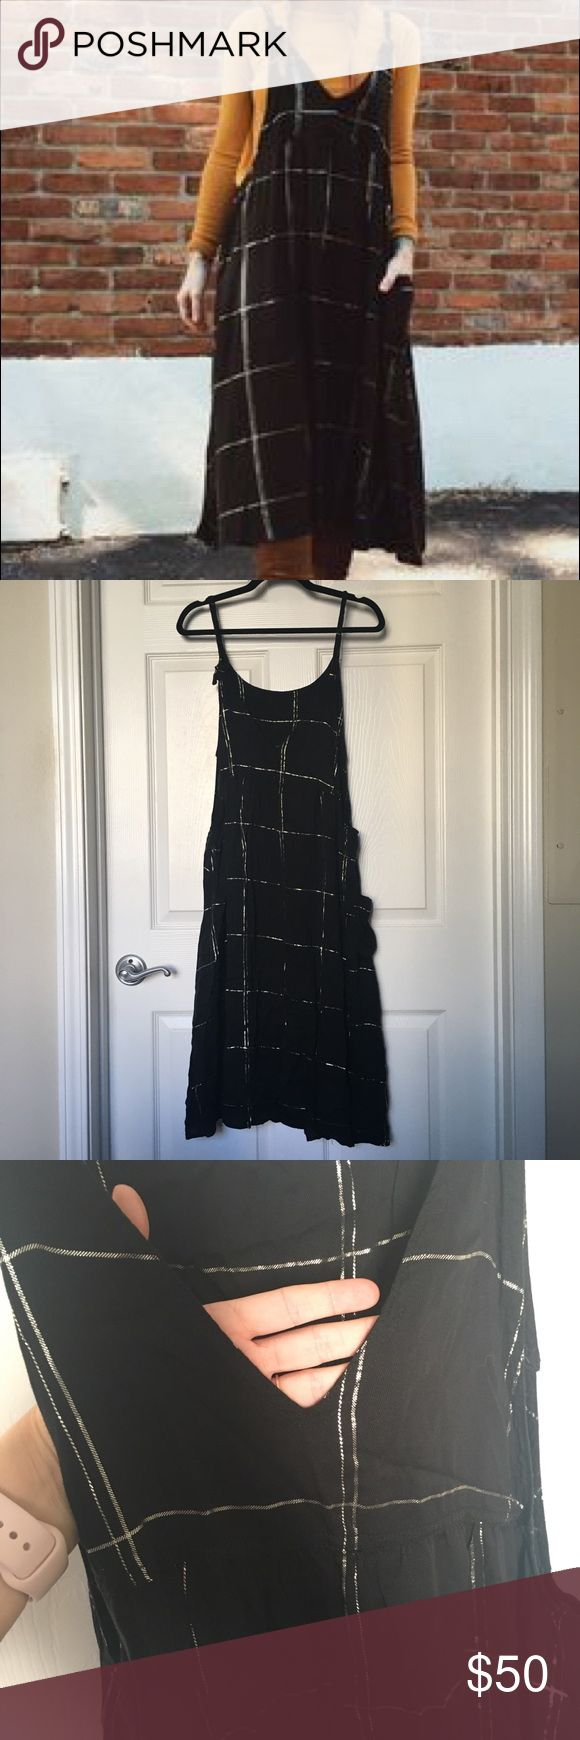 Knot Sisters Prairie Dress - S Black pinafore style dress with pocket. Gold plaid striping. Size small. Knot Sisters Dresses Midi